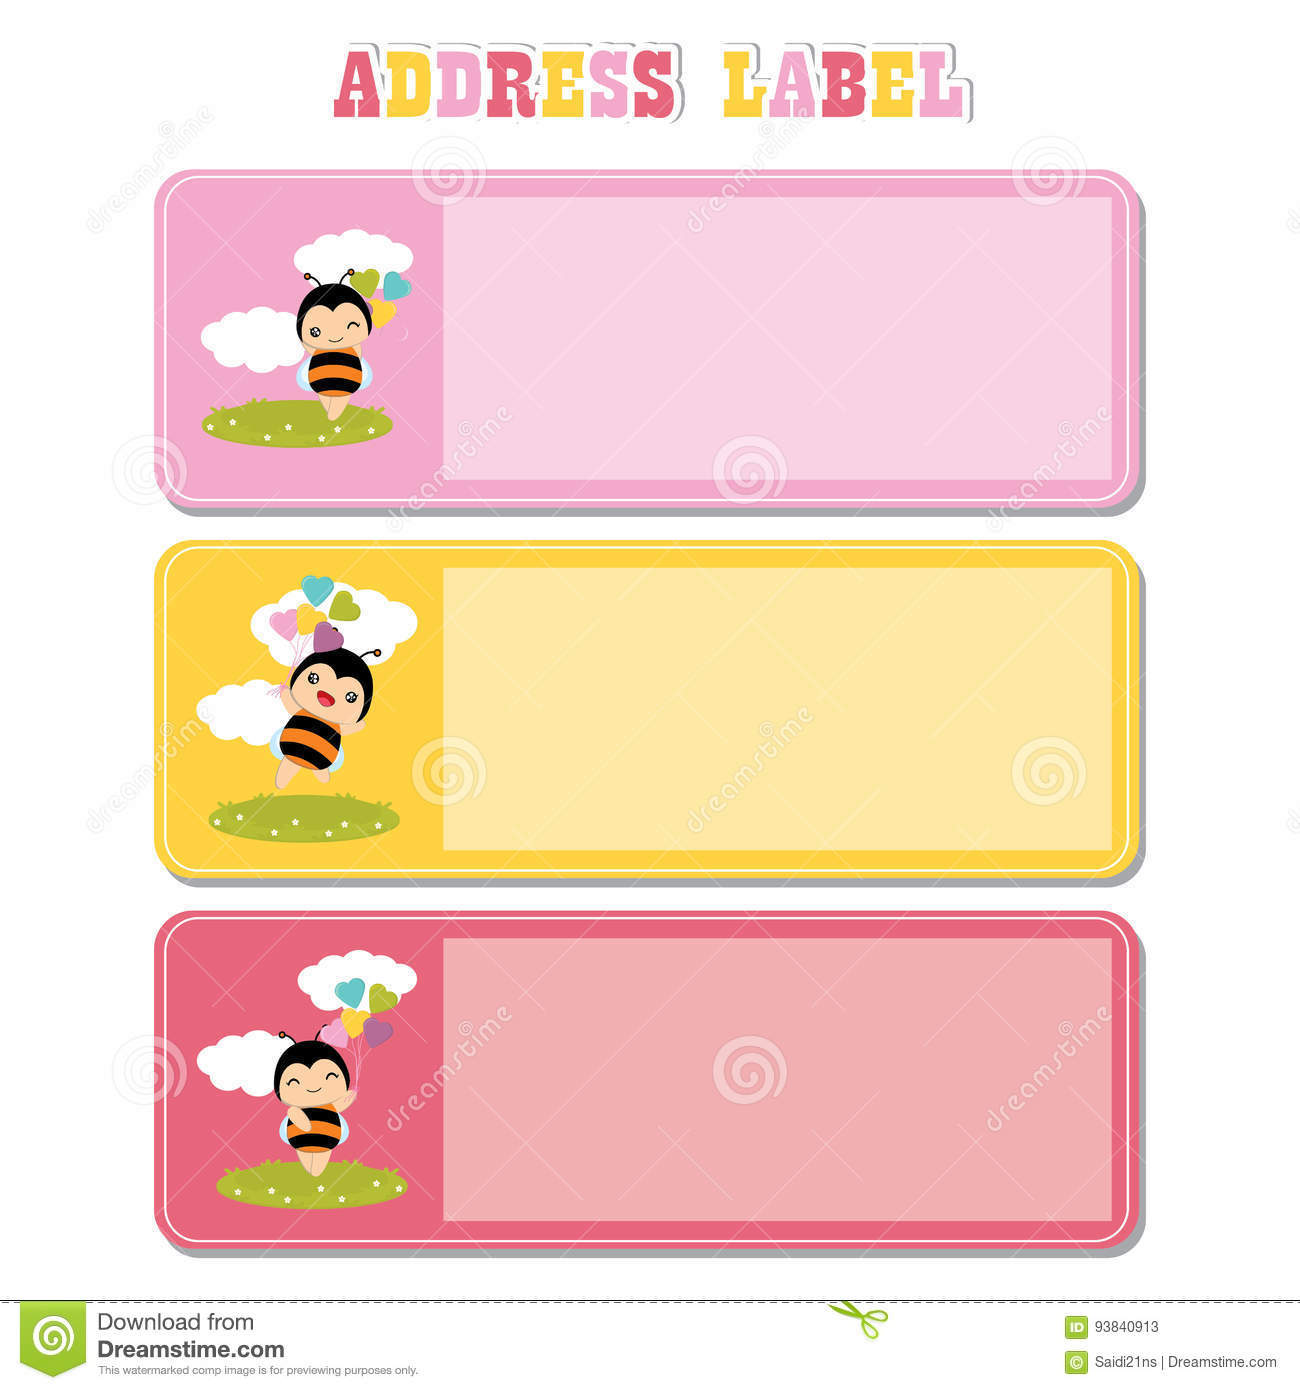 Address Label with cute bee on the grass suitable for kid address label